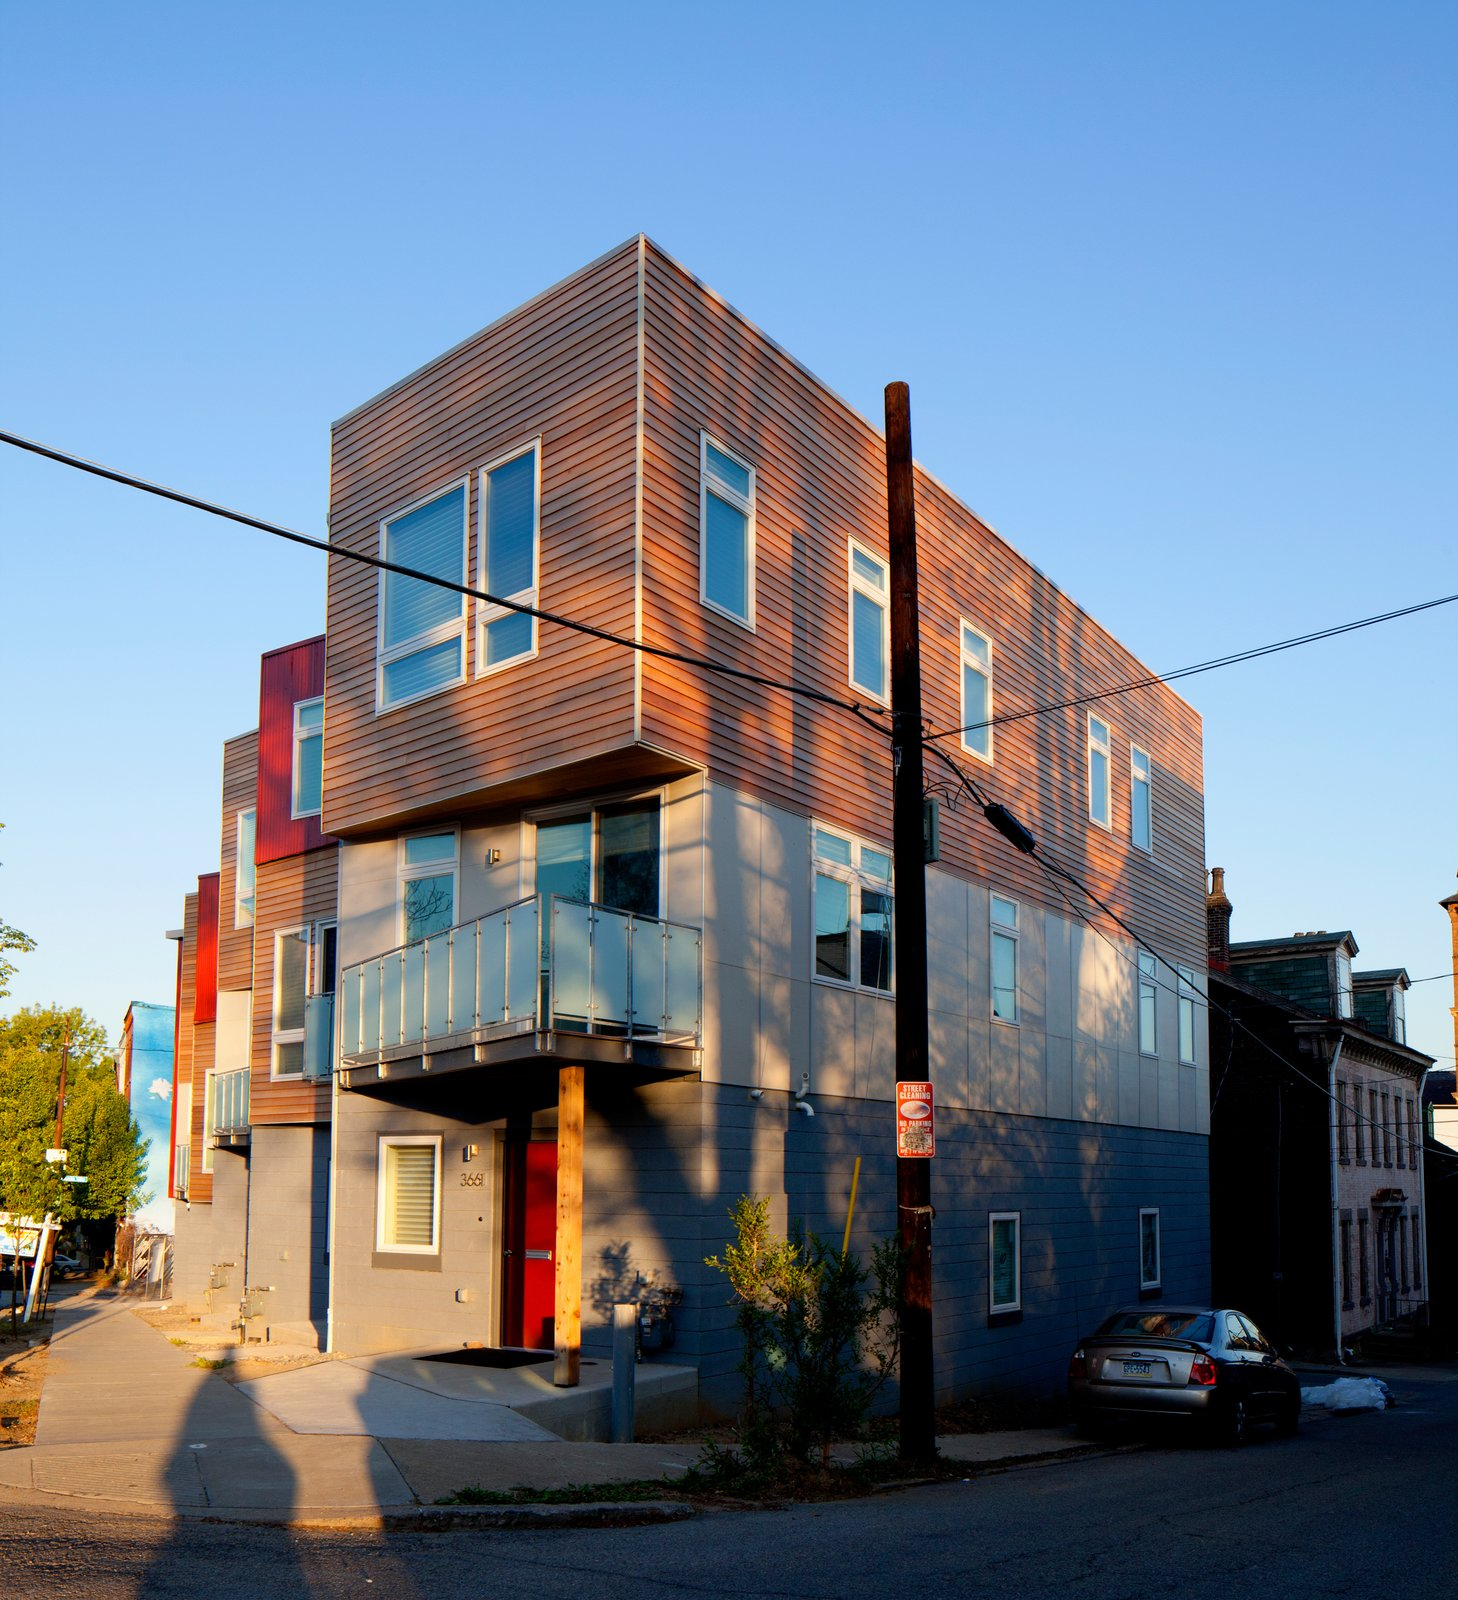 The Croghan's Edge Townhouse project addressed a difficult infill challenge in Pittsburgh's dense urban Lawrenceville neighborhood. The challenge was to accommodate four distinct for-sale residences on a small triangular site of only 3,300 square feet in an area that is surrounded by two streets and an alley. Additionally, the developer's intent and desire was to use factory-built modular components for the upper stories. The solution was to develop a scheme that not only addressed the neighborhood row house scale, but also provided a contemporary interpretation of the neighborhood context. Our design turned the site problems into opportunities for a unique solution.  Croghan's Edge Townhomes by mossArchitects